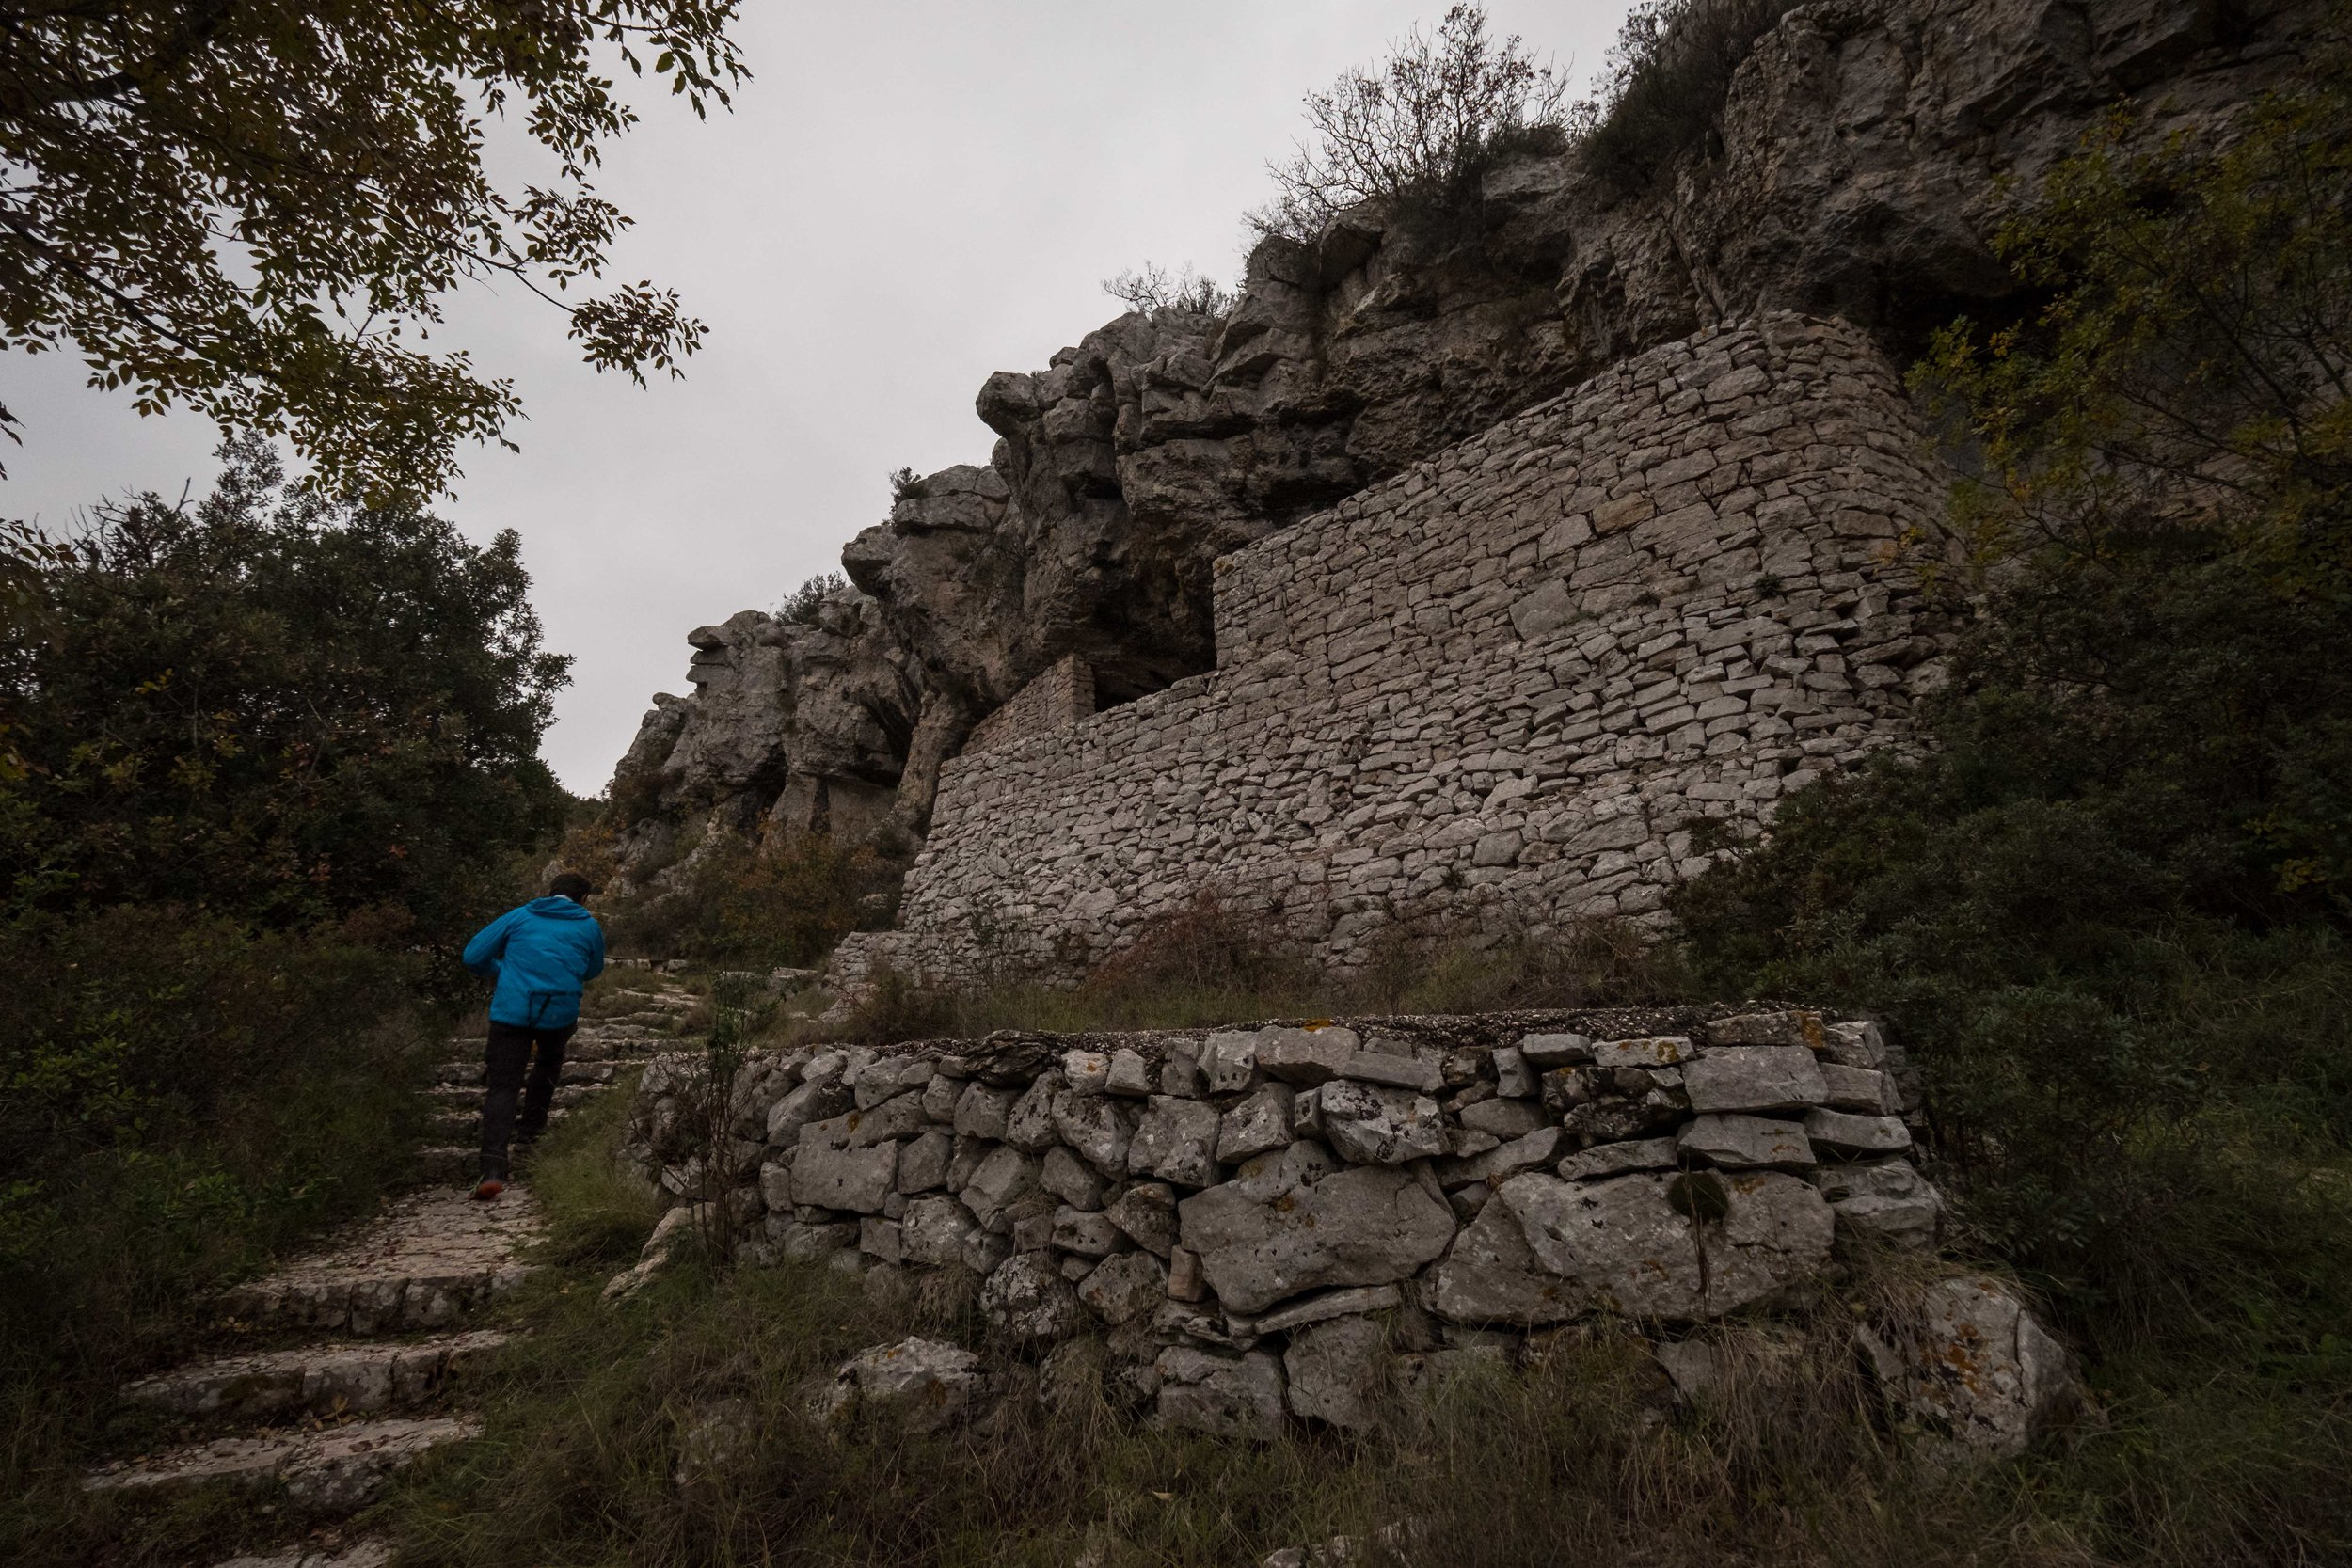 the steep steps leading to the rudimentary hide-out